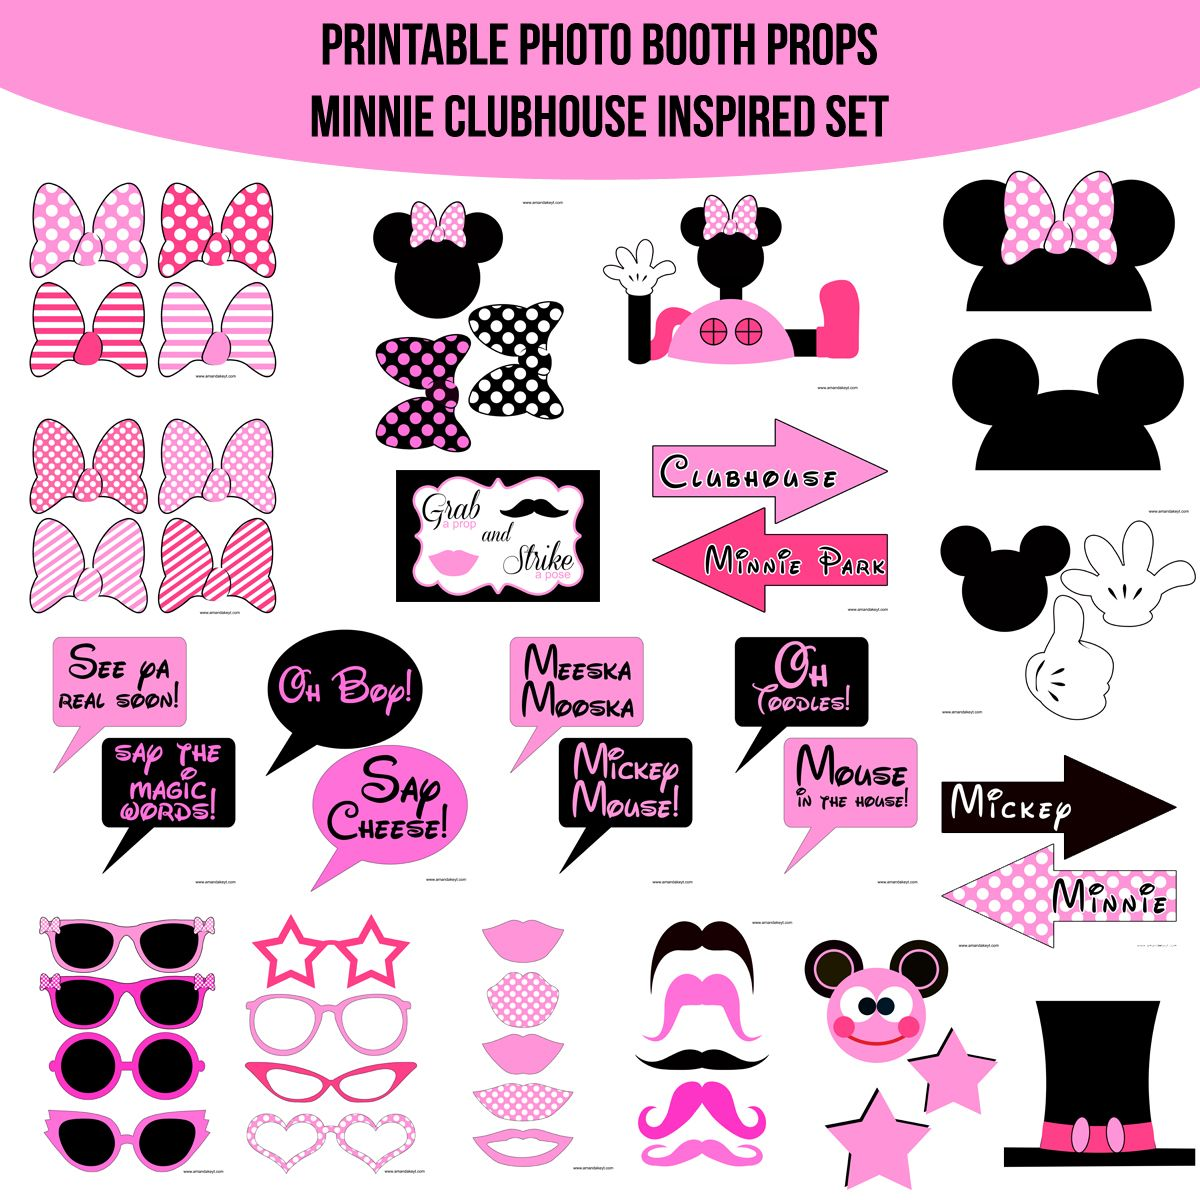 picture about Minnie Mouse Photo Booth Props Printable identify Fast Down load Minnie Mouse Clubhouse Encouraged Printable